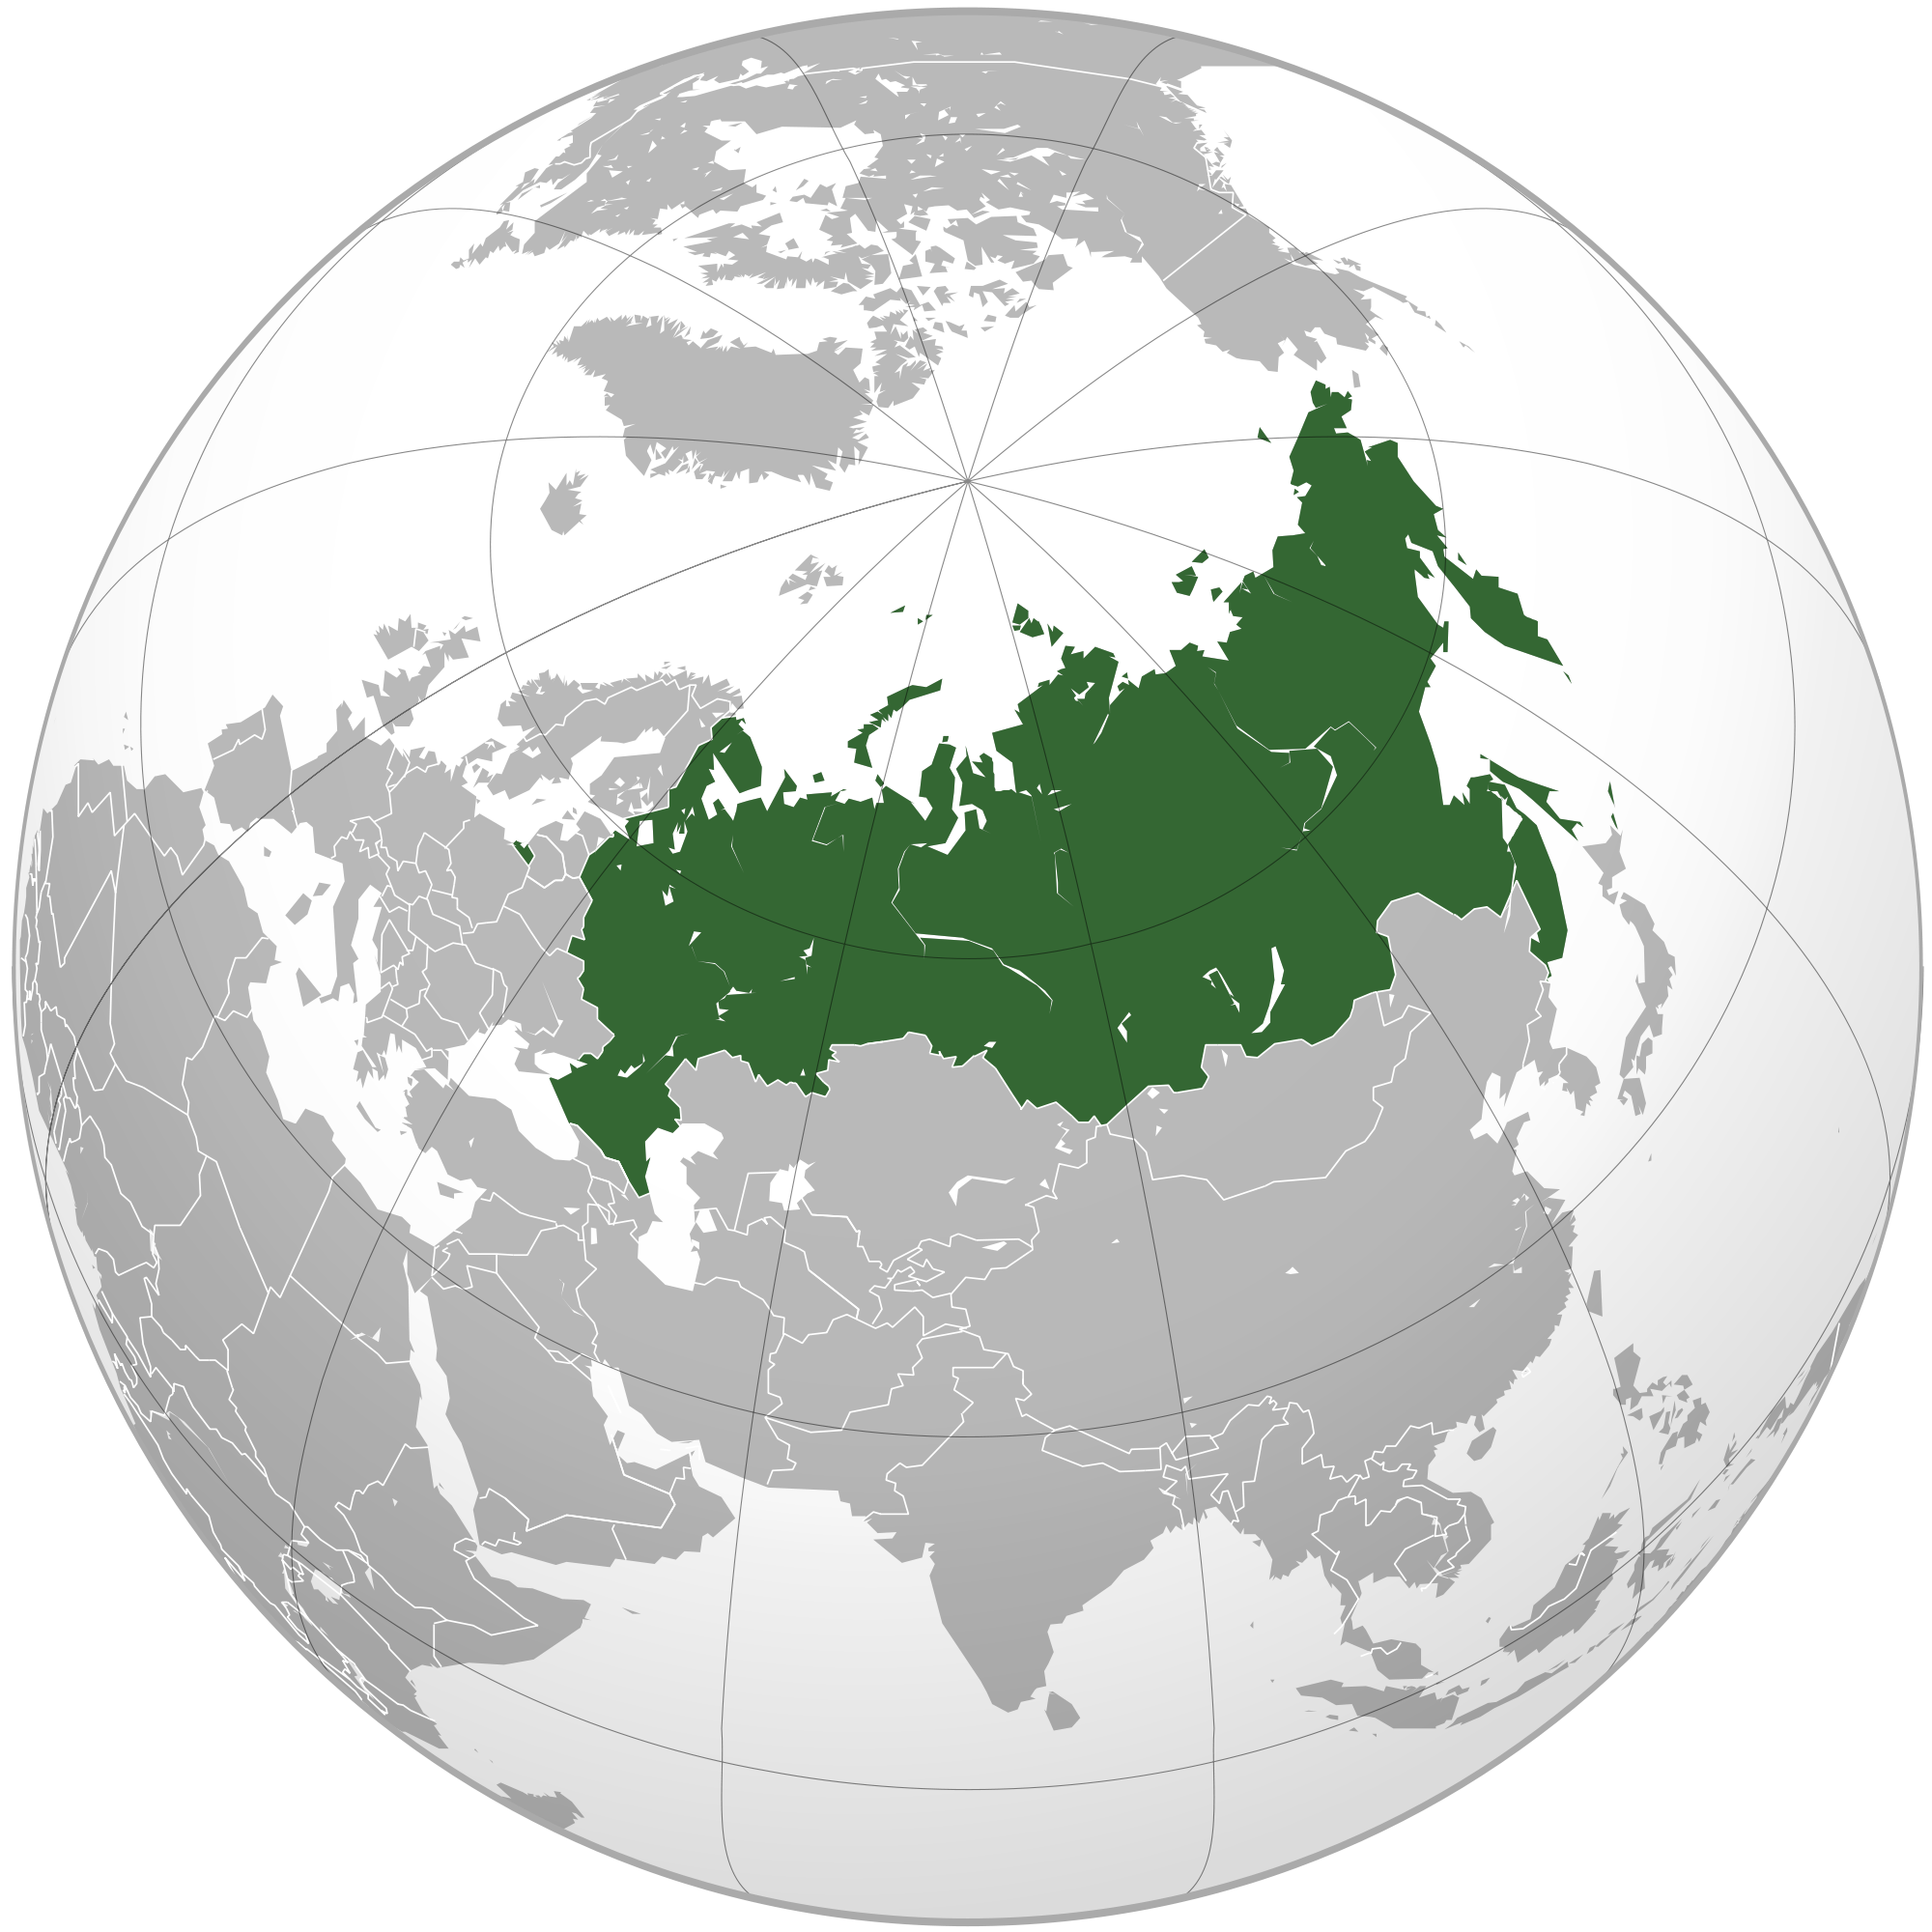 Location of the Russia in the World Map